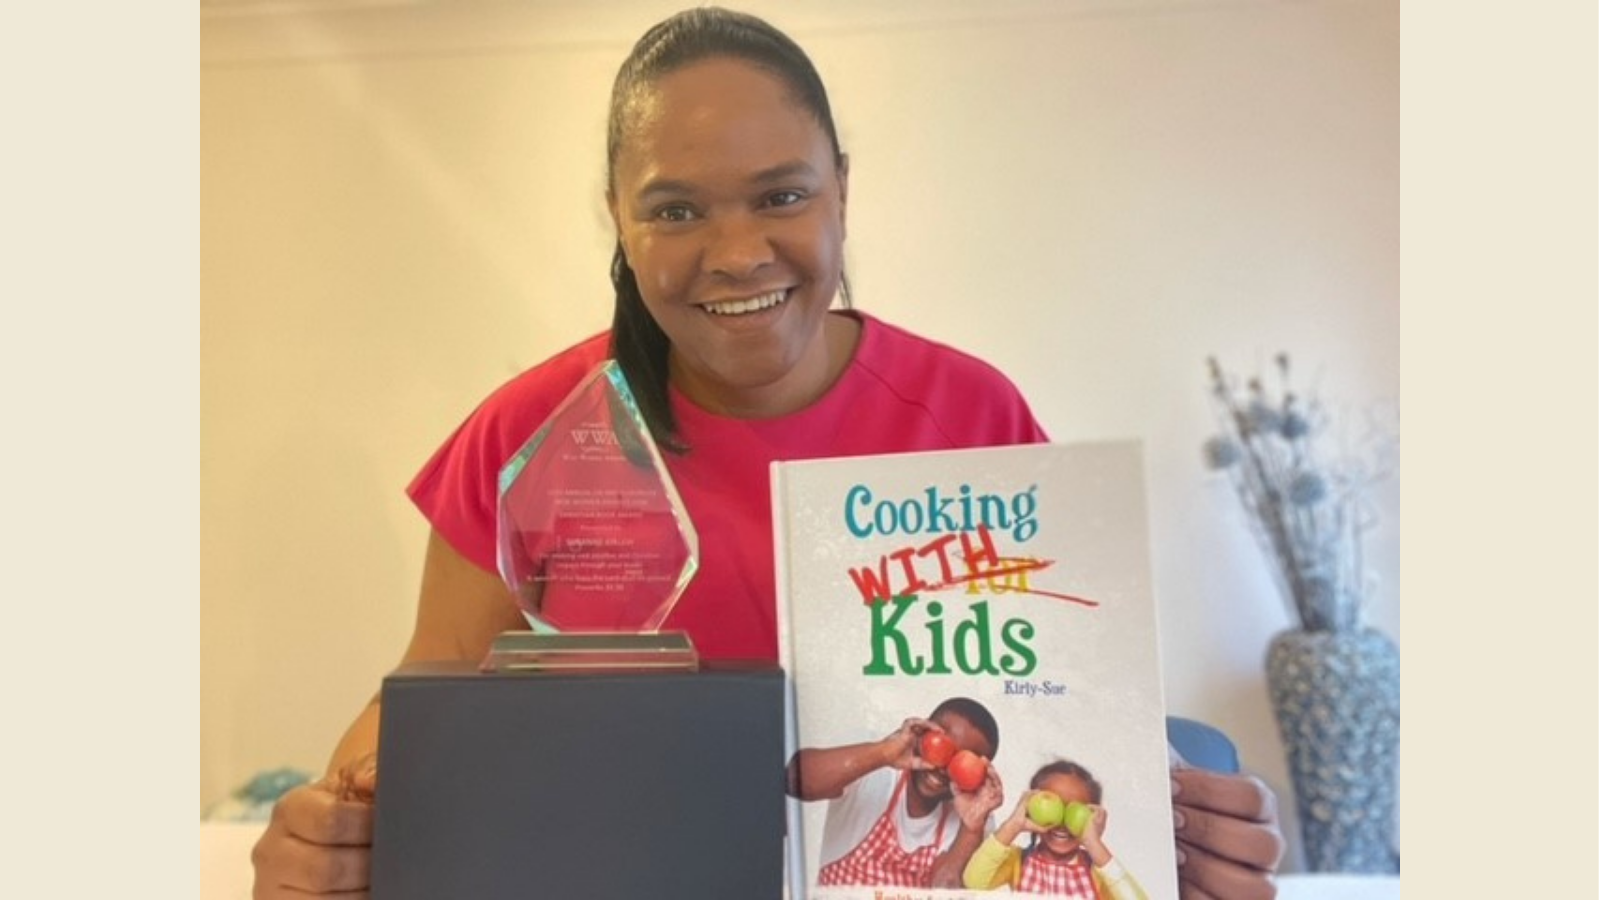 Kirly-Sue receives an award for her cookbook